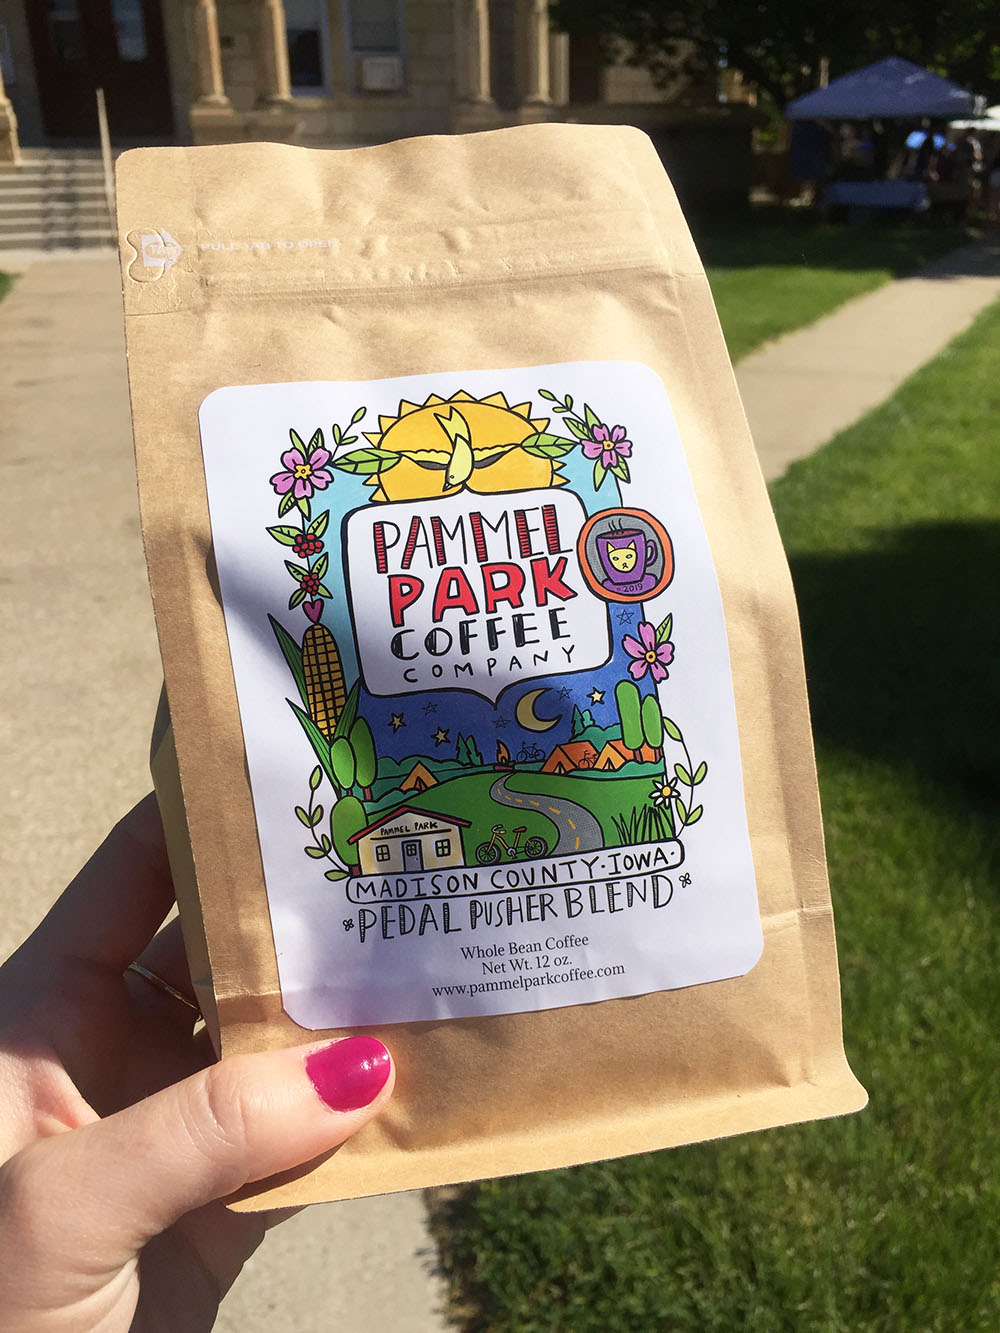 Bag of coffee beans from Pammel Park Coffee with colorful illustrated label at the Winterset Farmers' Market in Winterset, Iowa